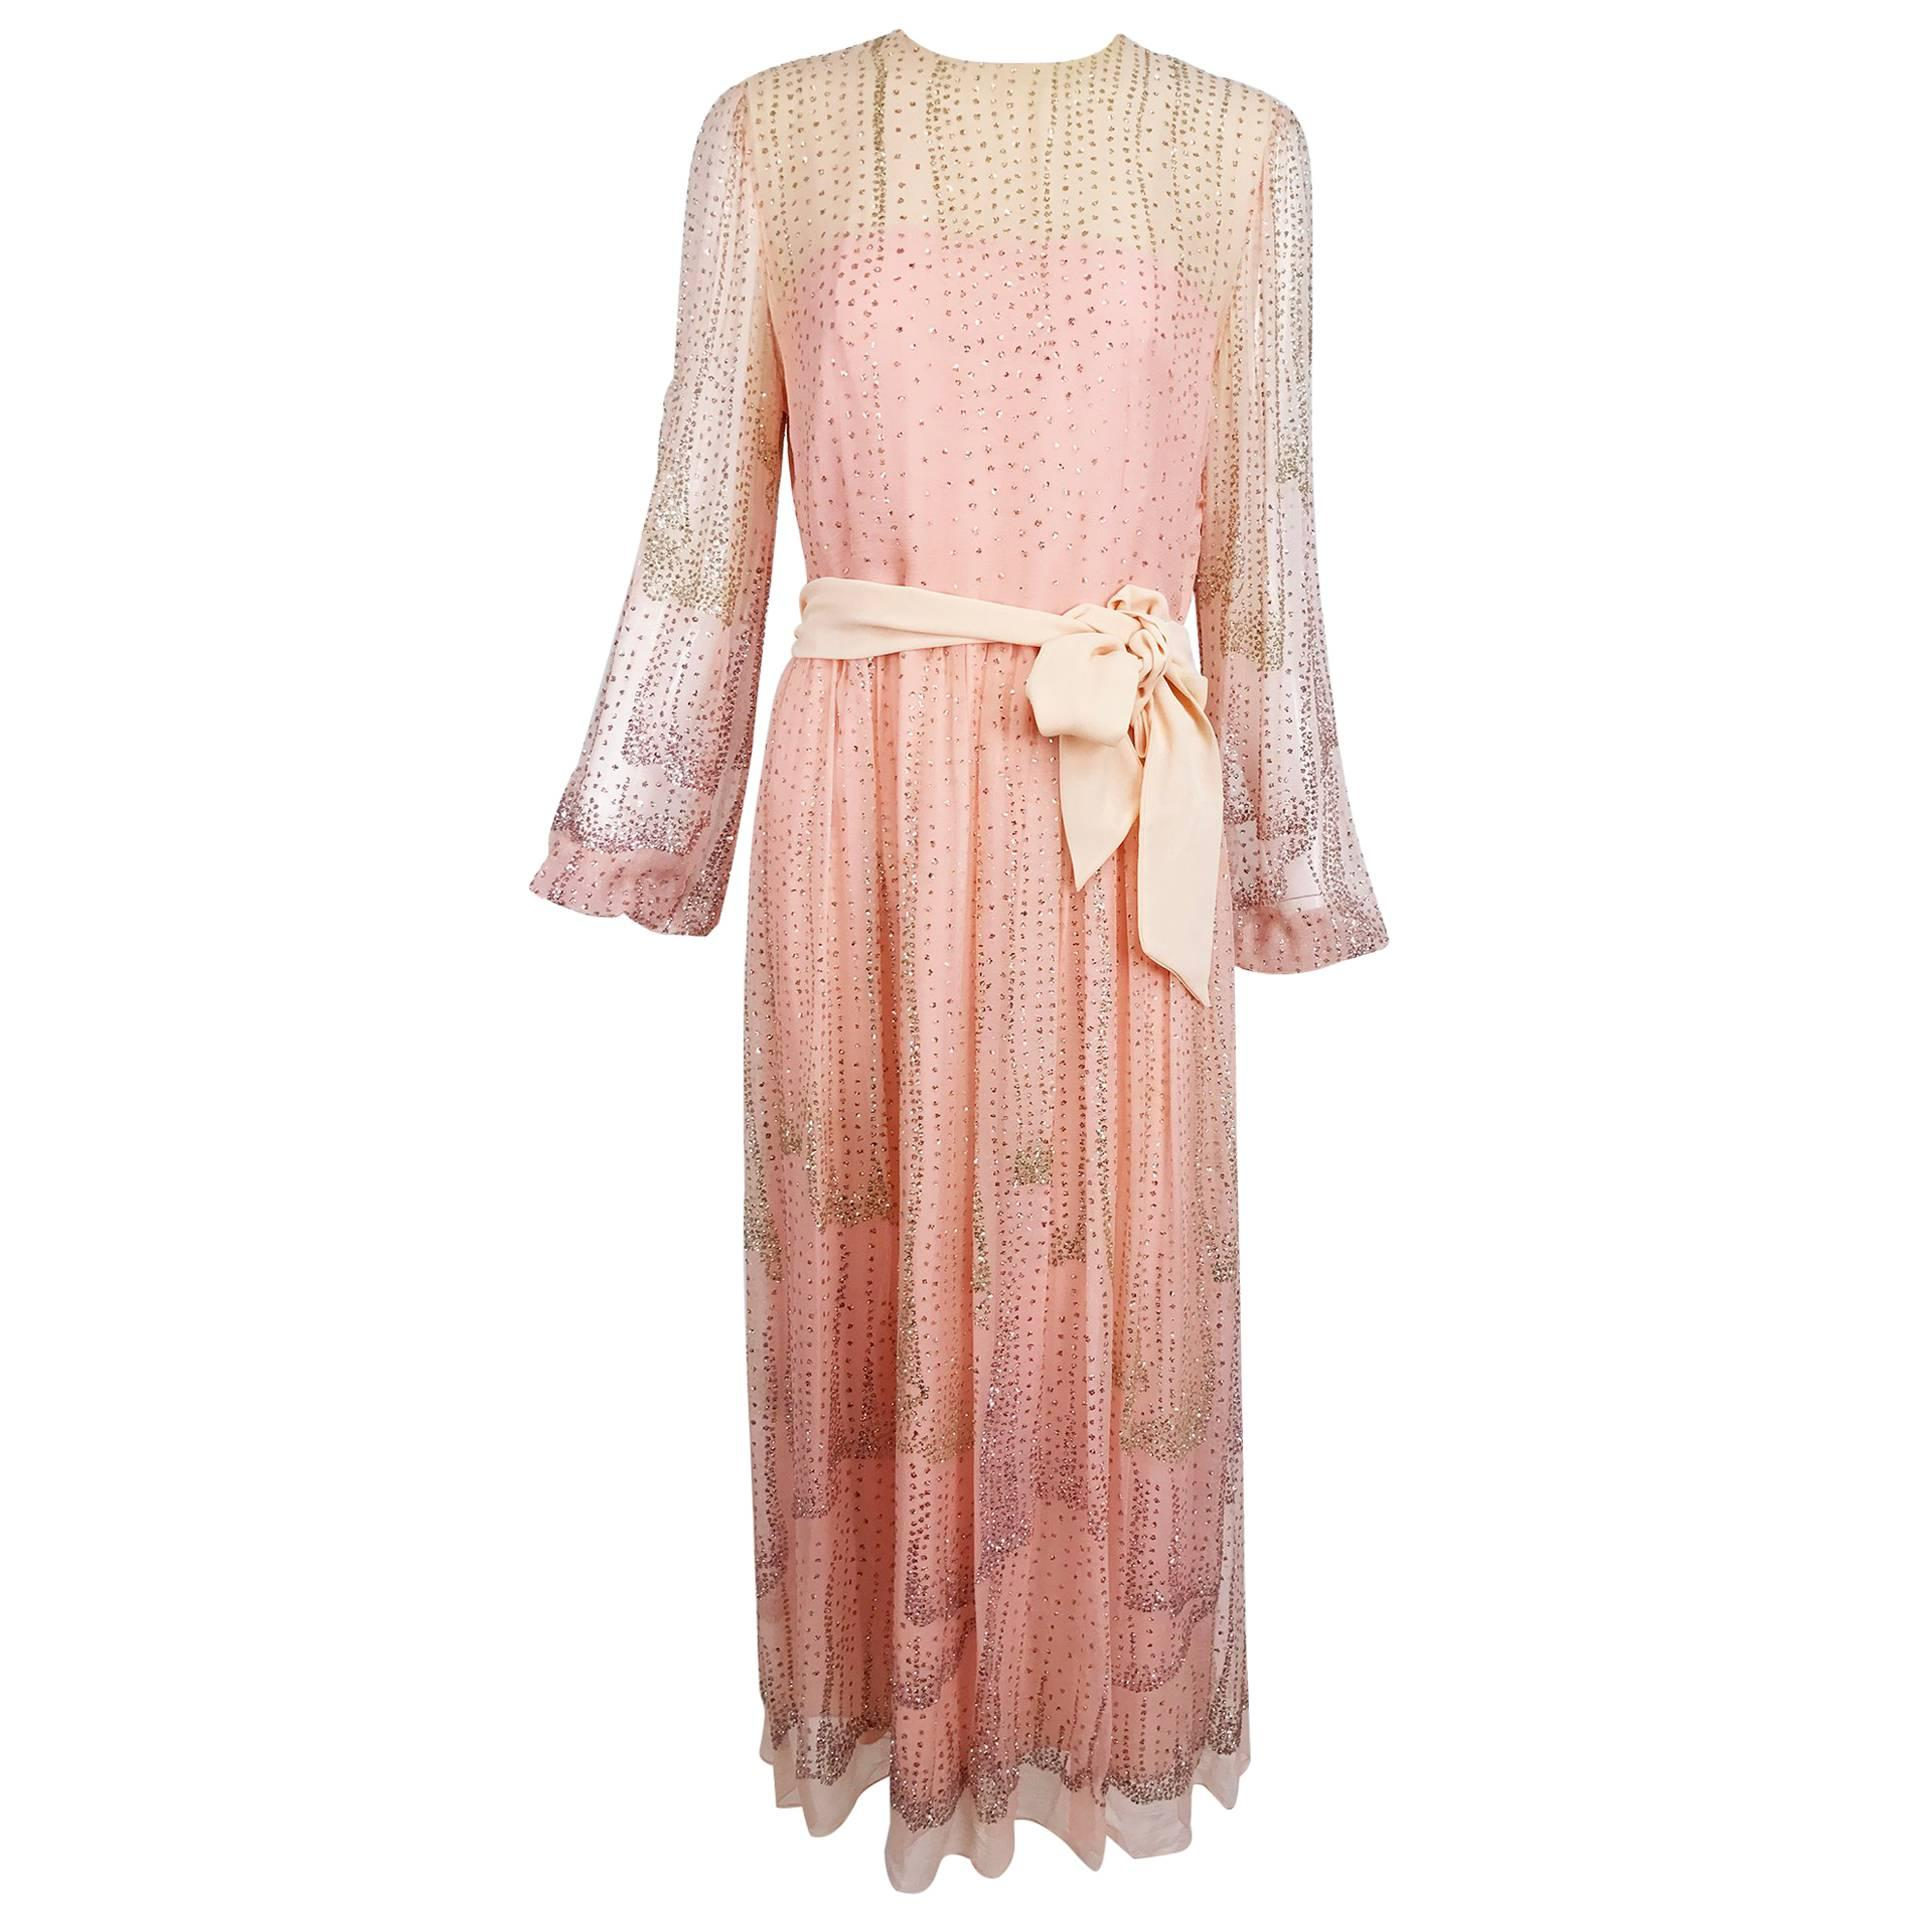 Vintage Richilene pink silk chiffon with silver glitter evening dress 1970s